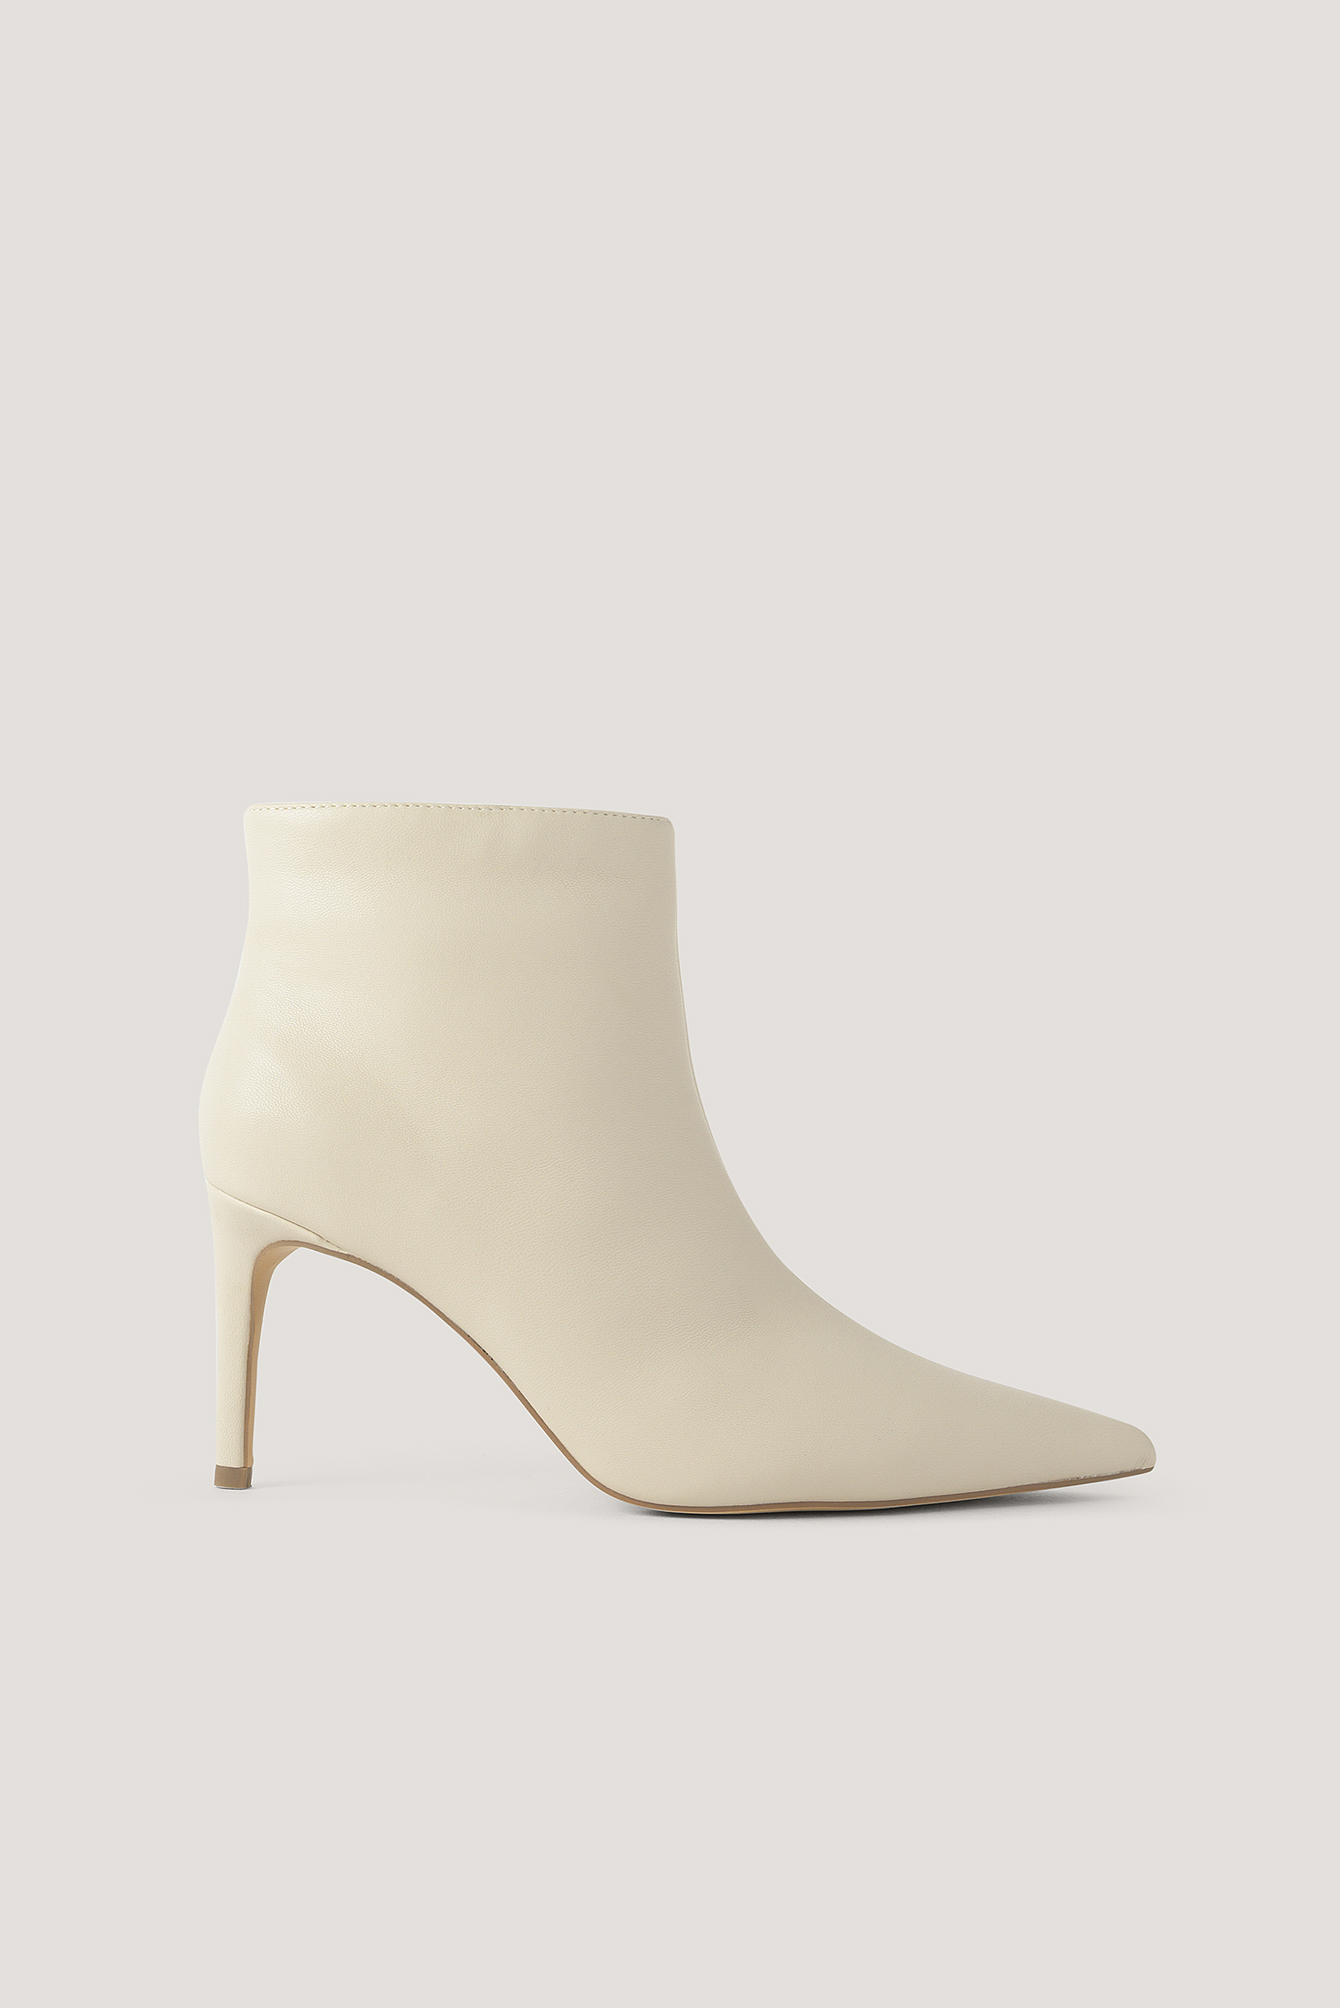 Na-Kd Shoes Slim Pointy Stiletto Boots - Beige,Offwhite